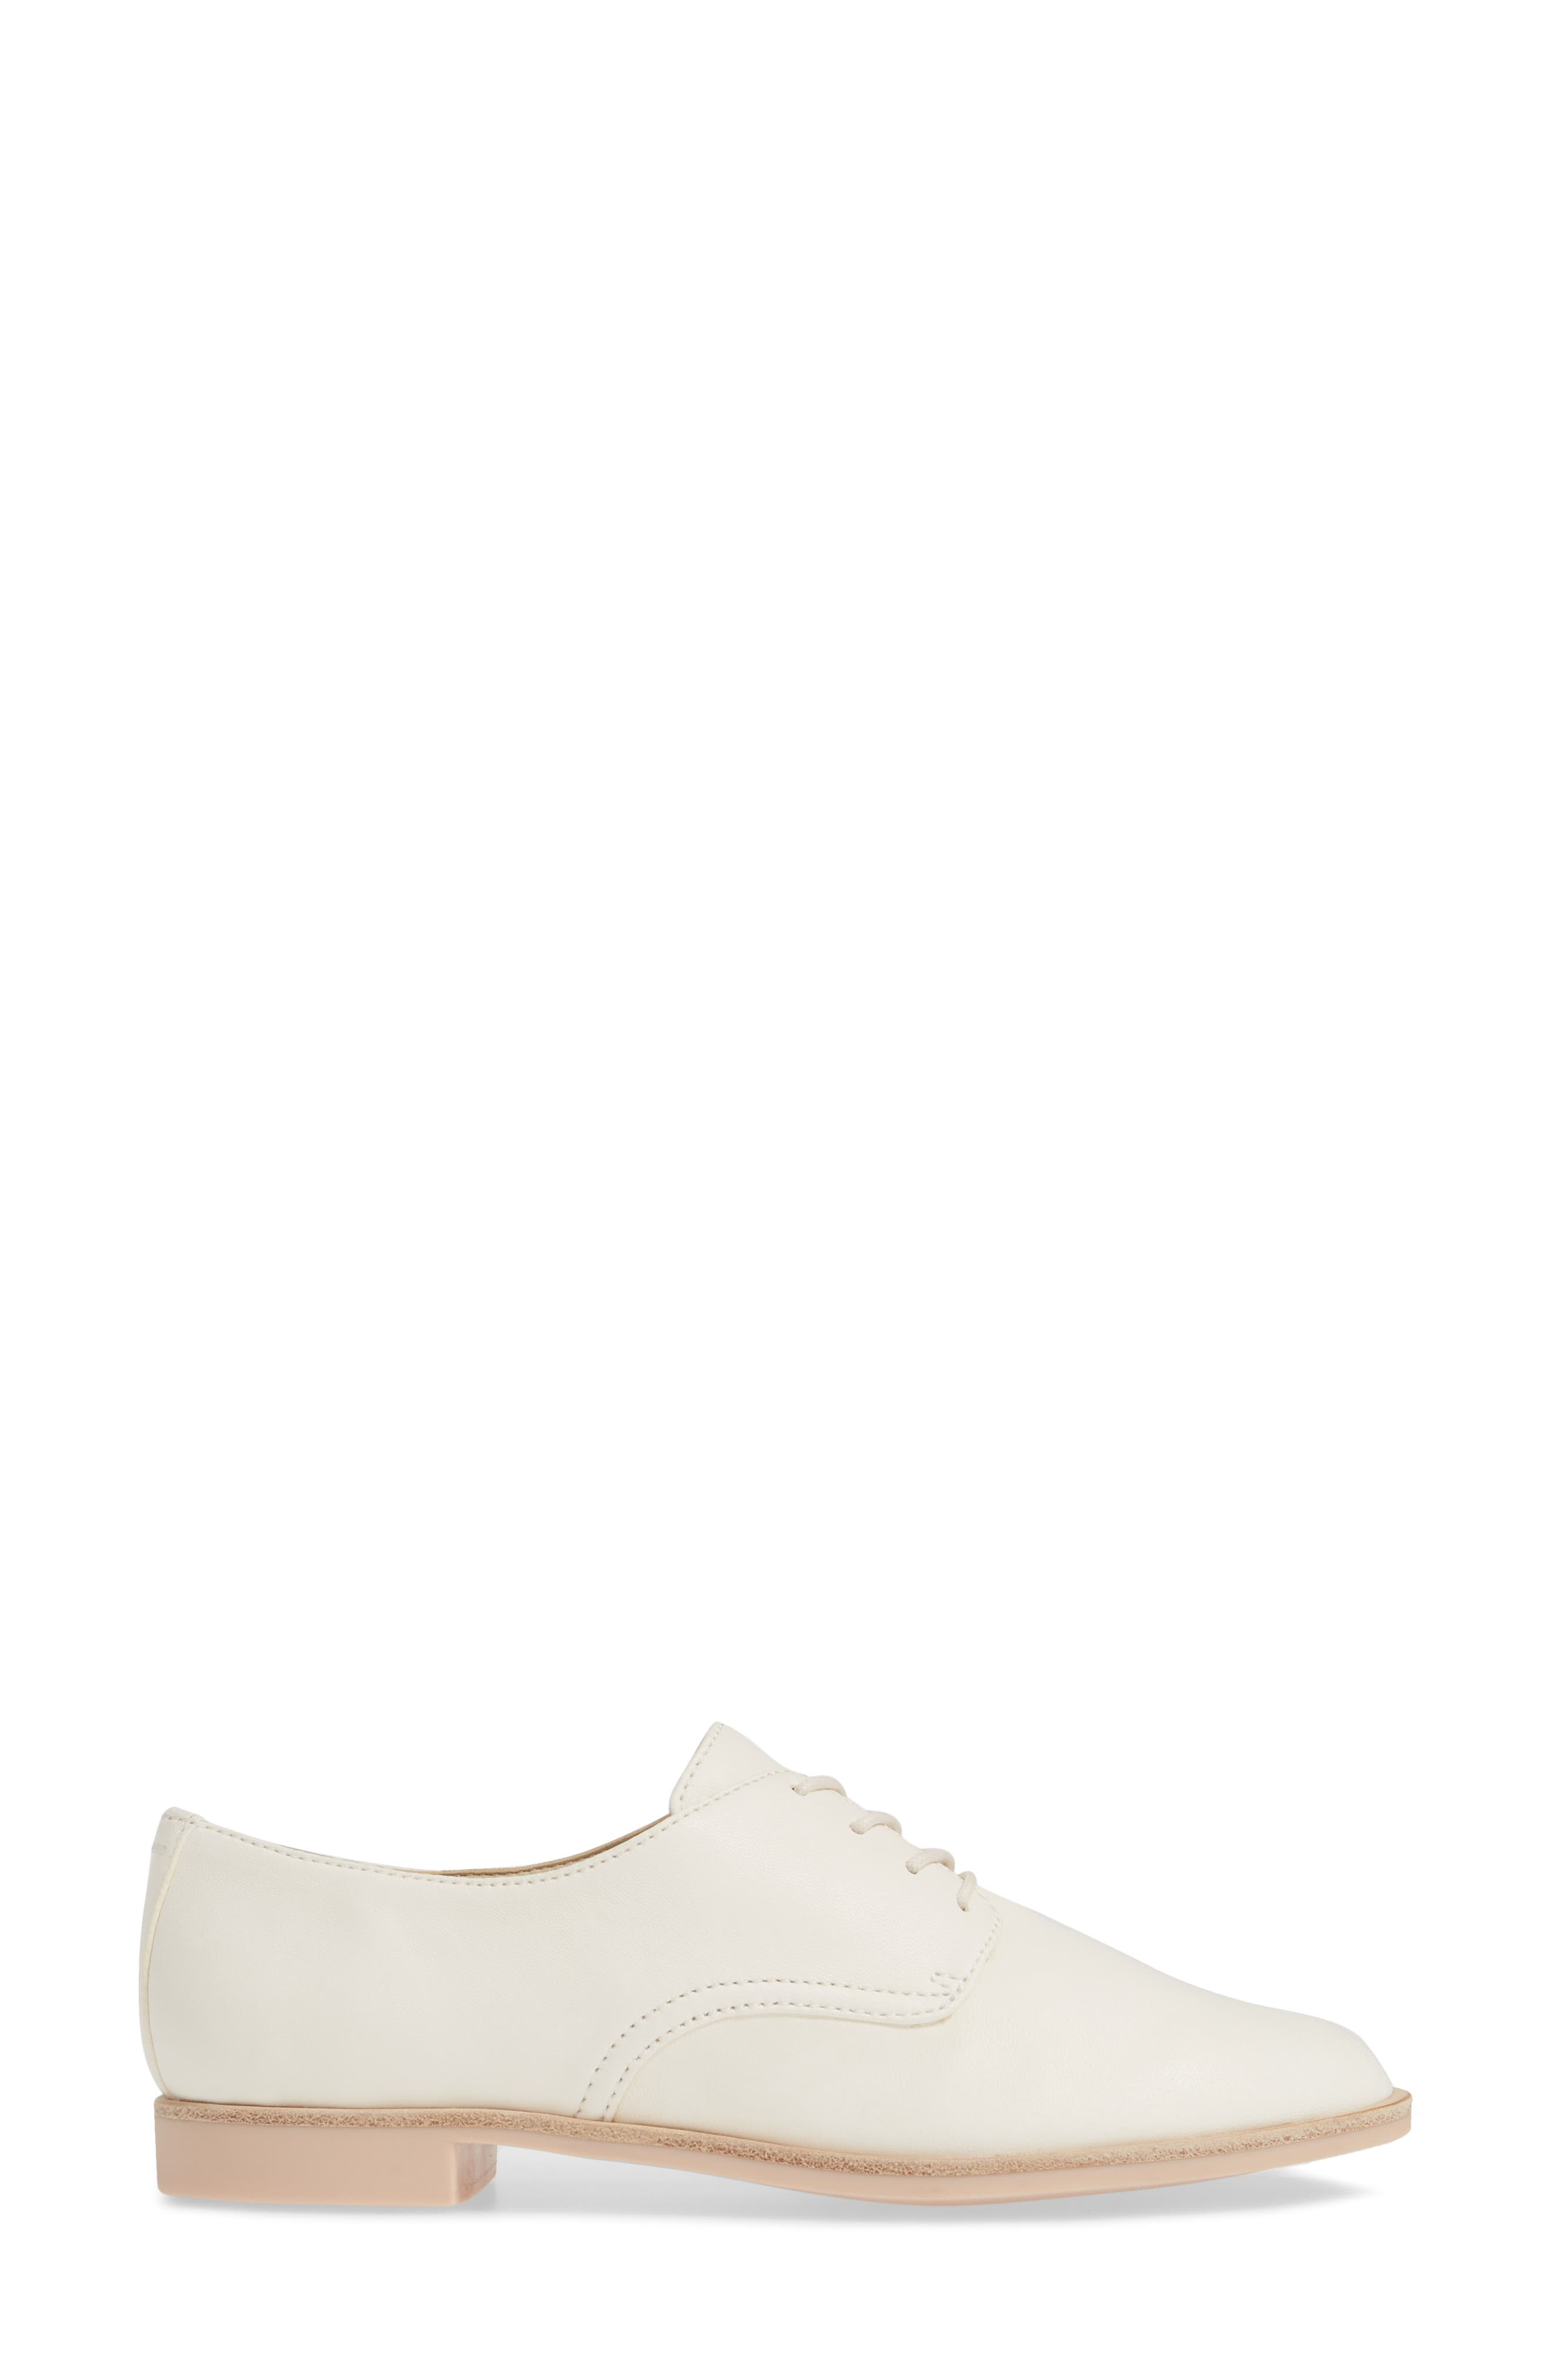 DOLCE VITA, Kyle Derby, Alternate thumbnail 3, color, OFF WHITE LEATHER